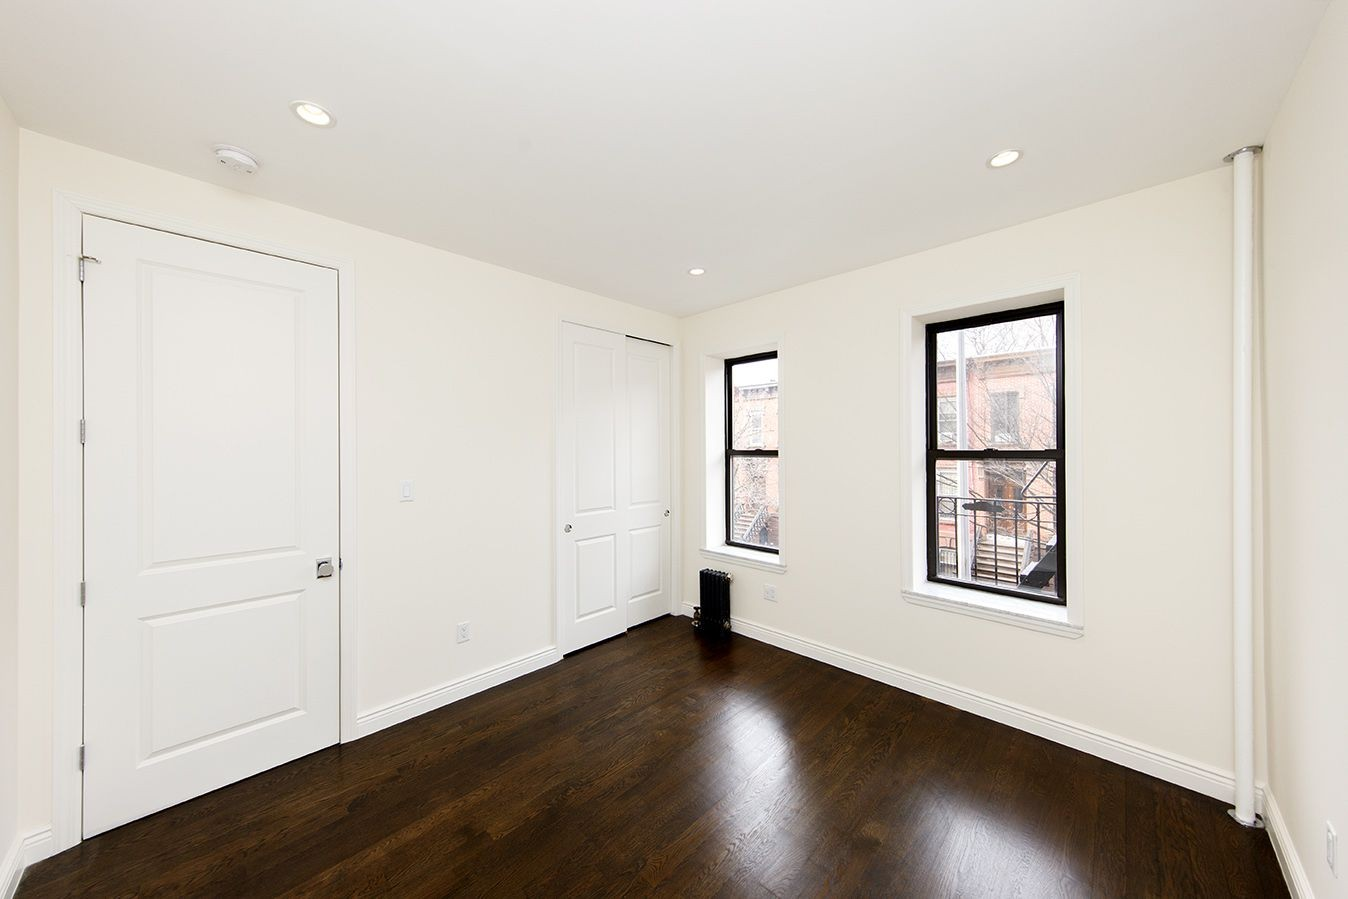 36 40 Linden Street 9b Brooklyn Ny 11221 3 Bedroom Apartment For Rent For 3 300 Month Zumper